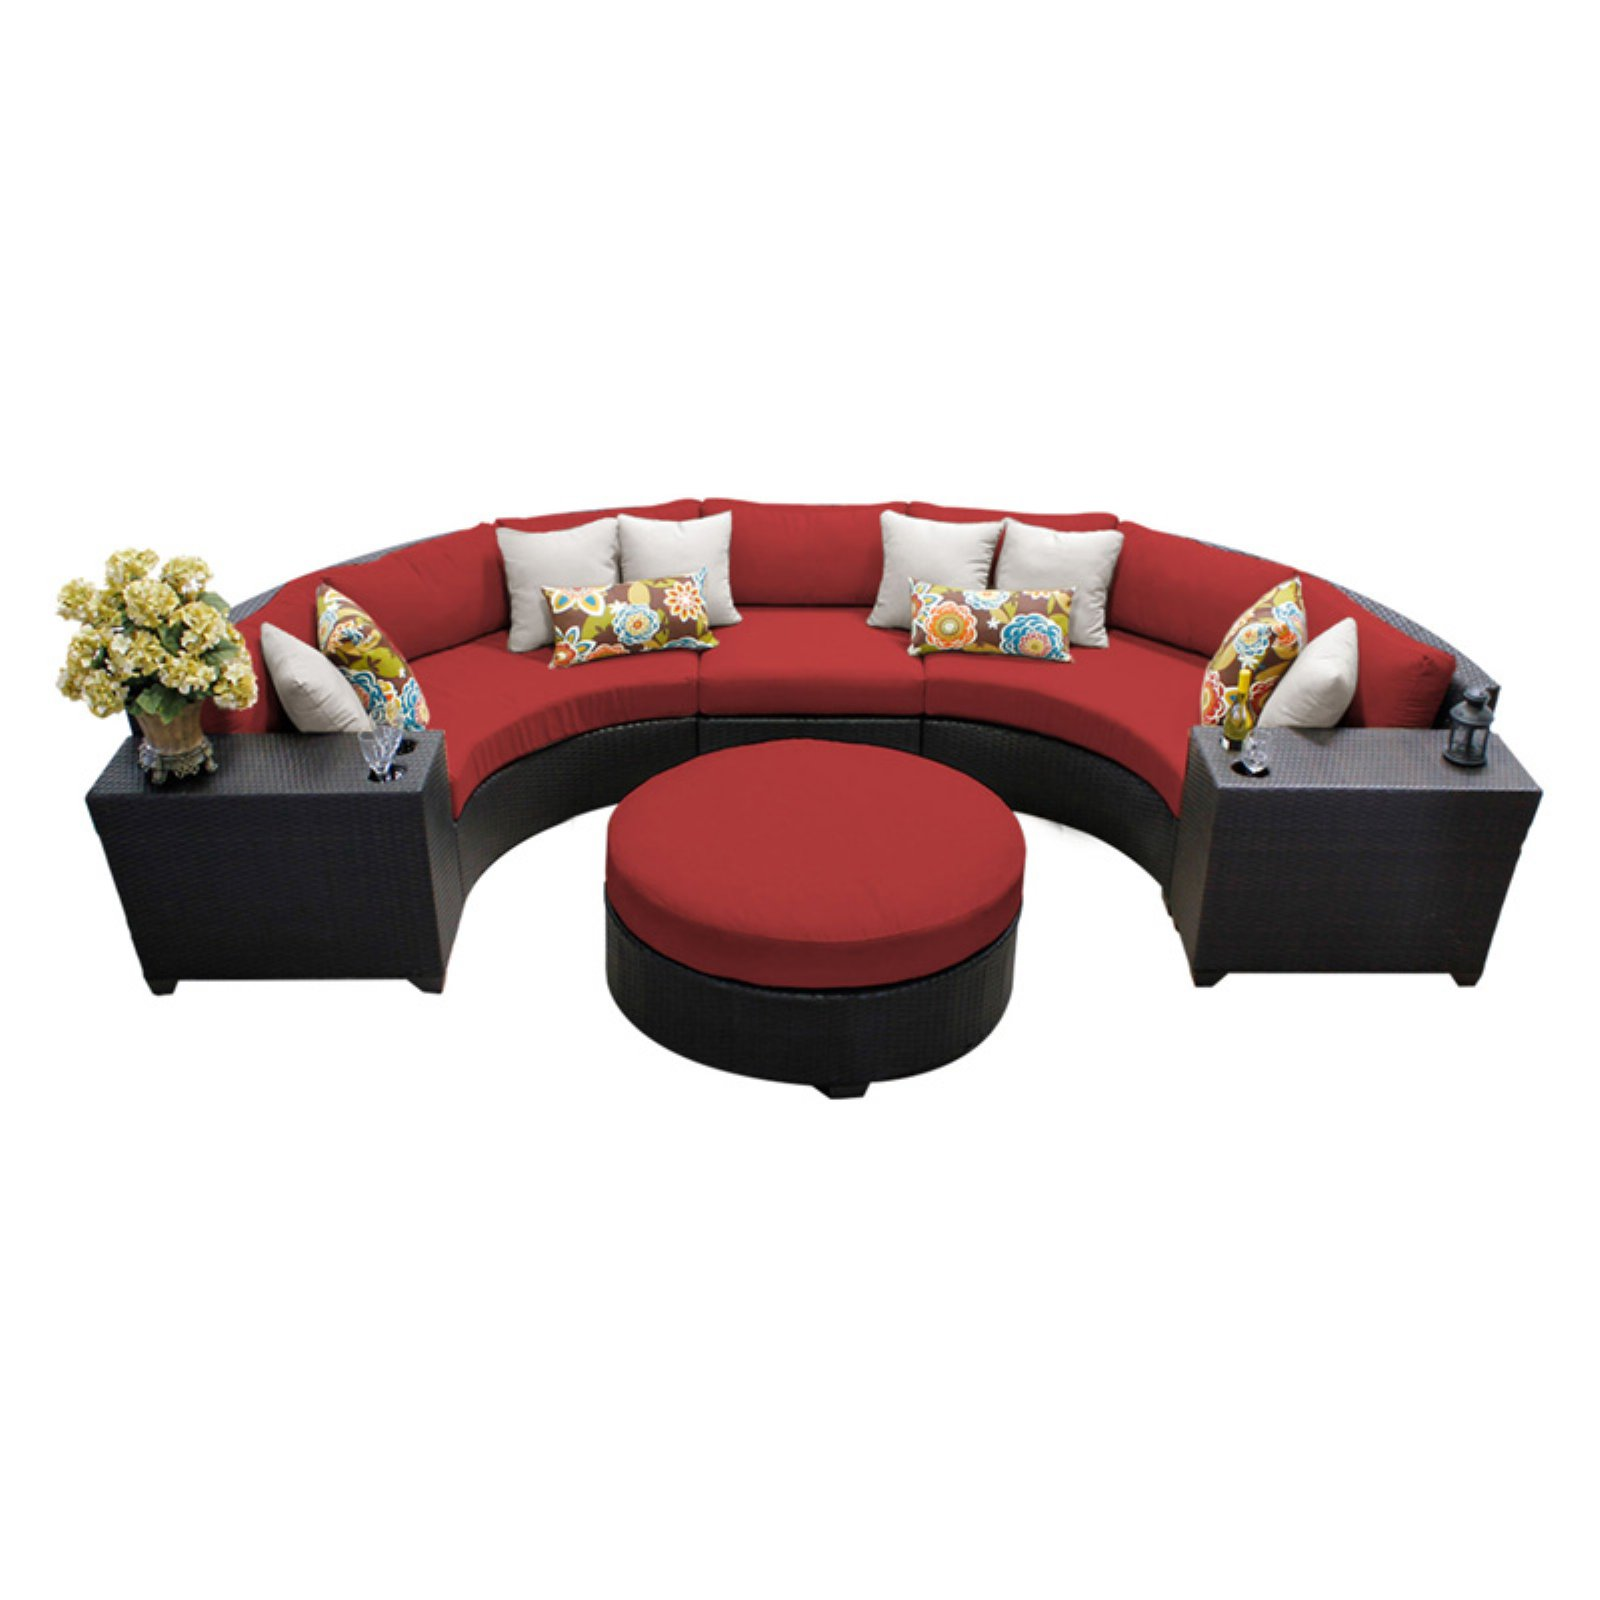 TK Classics Barbados Wicker 6 Piece Patio Conversation Set with Round Coffee Table and 2 Sets of Cushion Covers